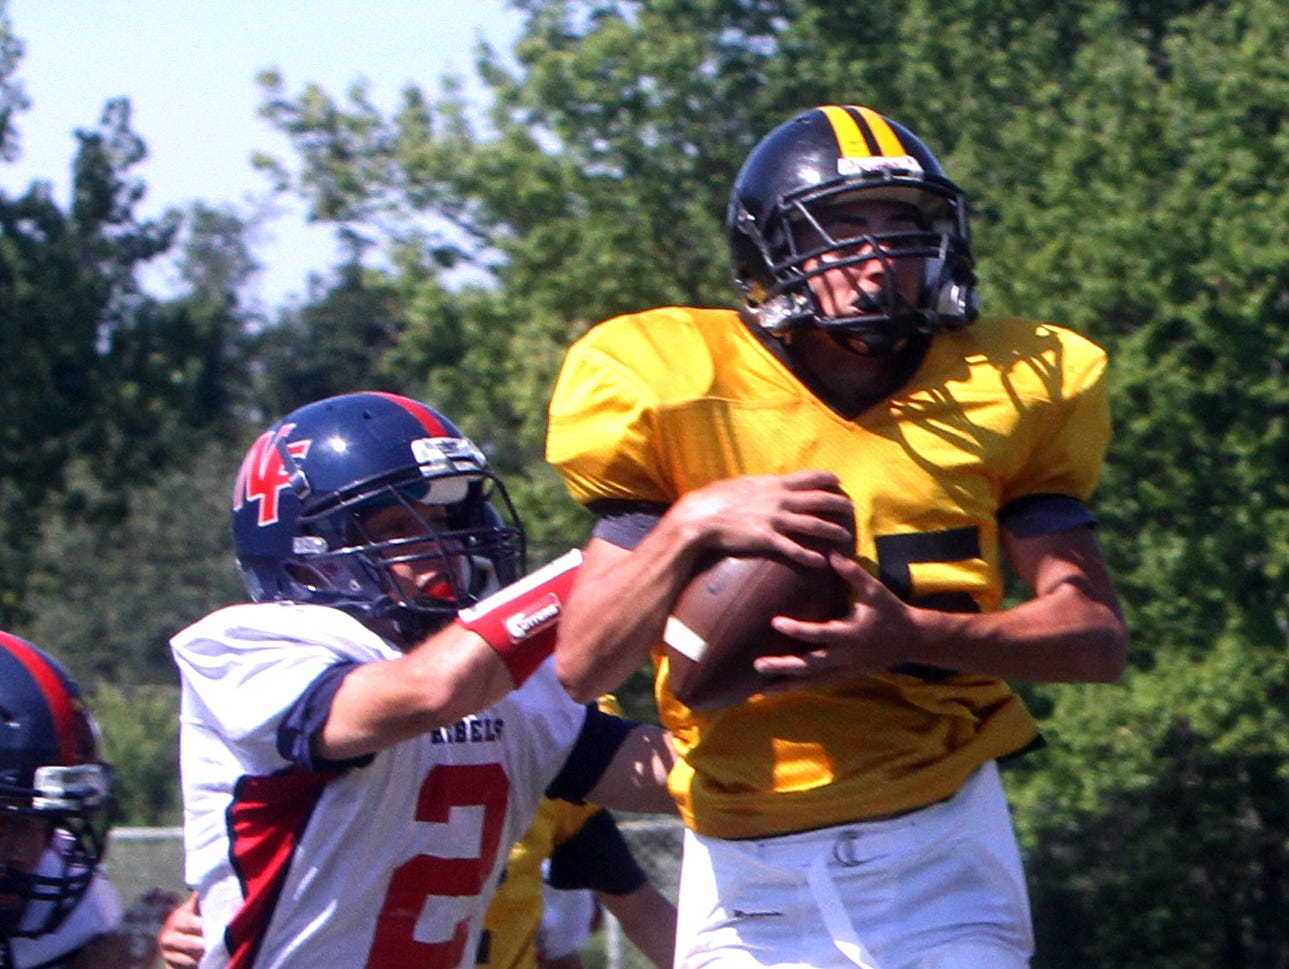 Nanuet's Mike Zaro catches a touchdown pass over a New Fairfield. Conn. defender during a multi-team football scrimmage at Brewster High School Aug. 27, 2016. Several area teams took part in the scrimmage in advance of next weekend's season opening games.